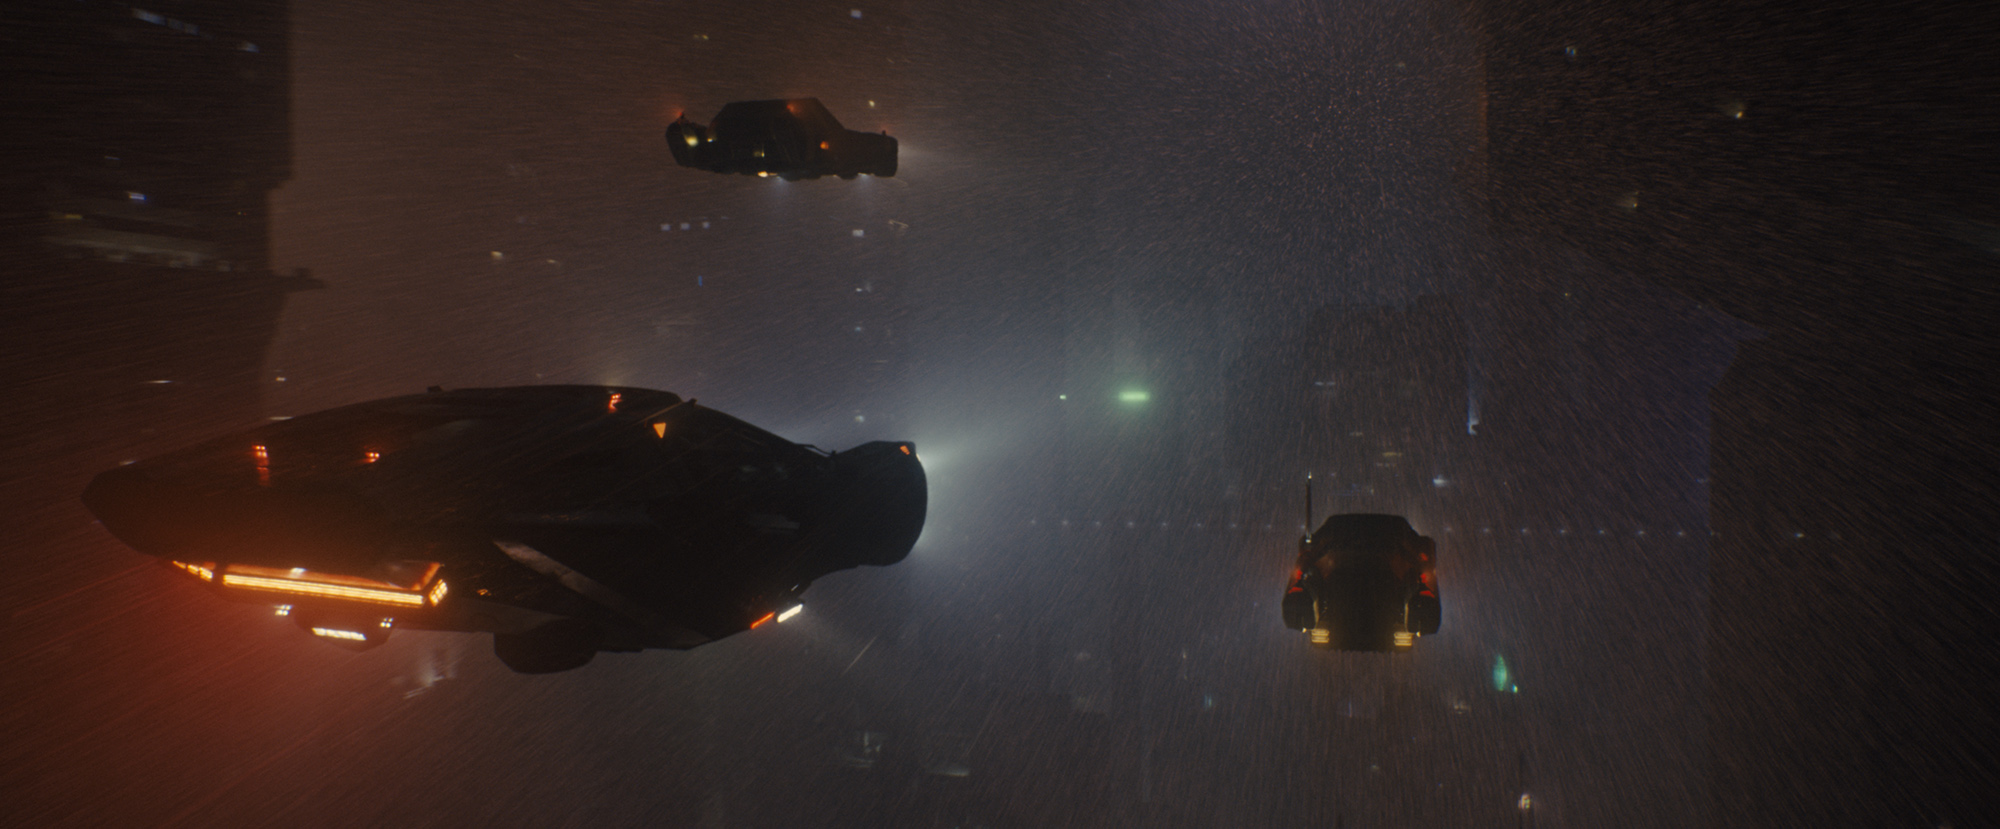 K's Spinner flying car in Blade Runner 2049 (©2017 ALCON ENTERTAINMENT, LLC., WARNER BROS. ENTERTAINMENT INC. AND COLUMBIA TRISTAR MARKETING GROUP, INC. ALL RIGHTS RESERVED.)